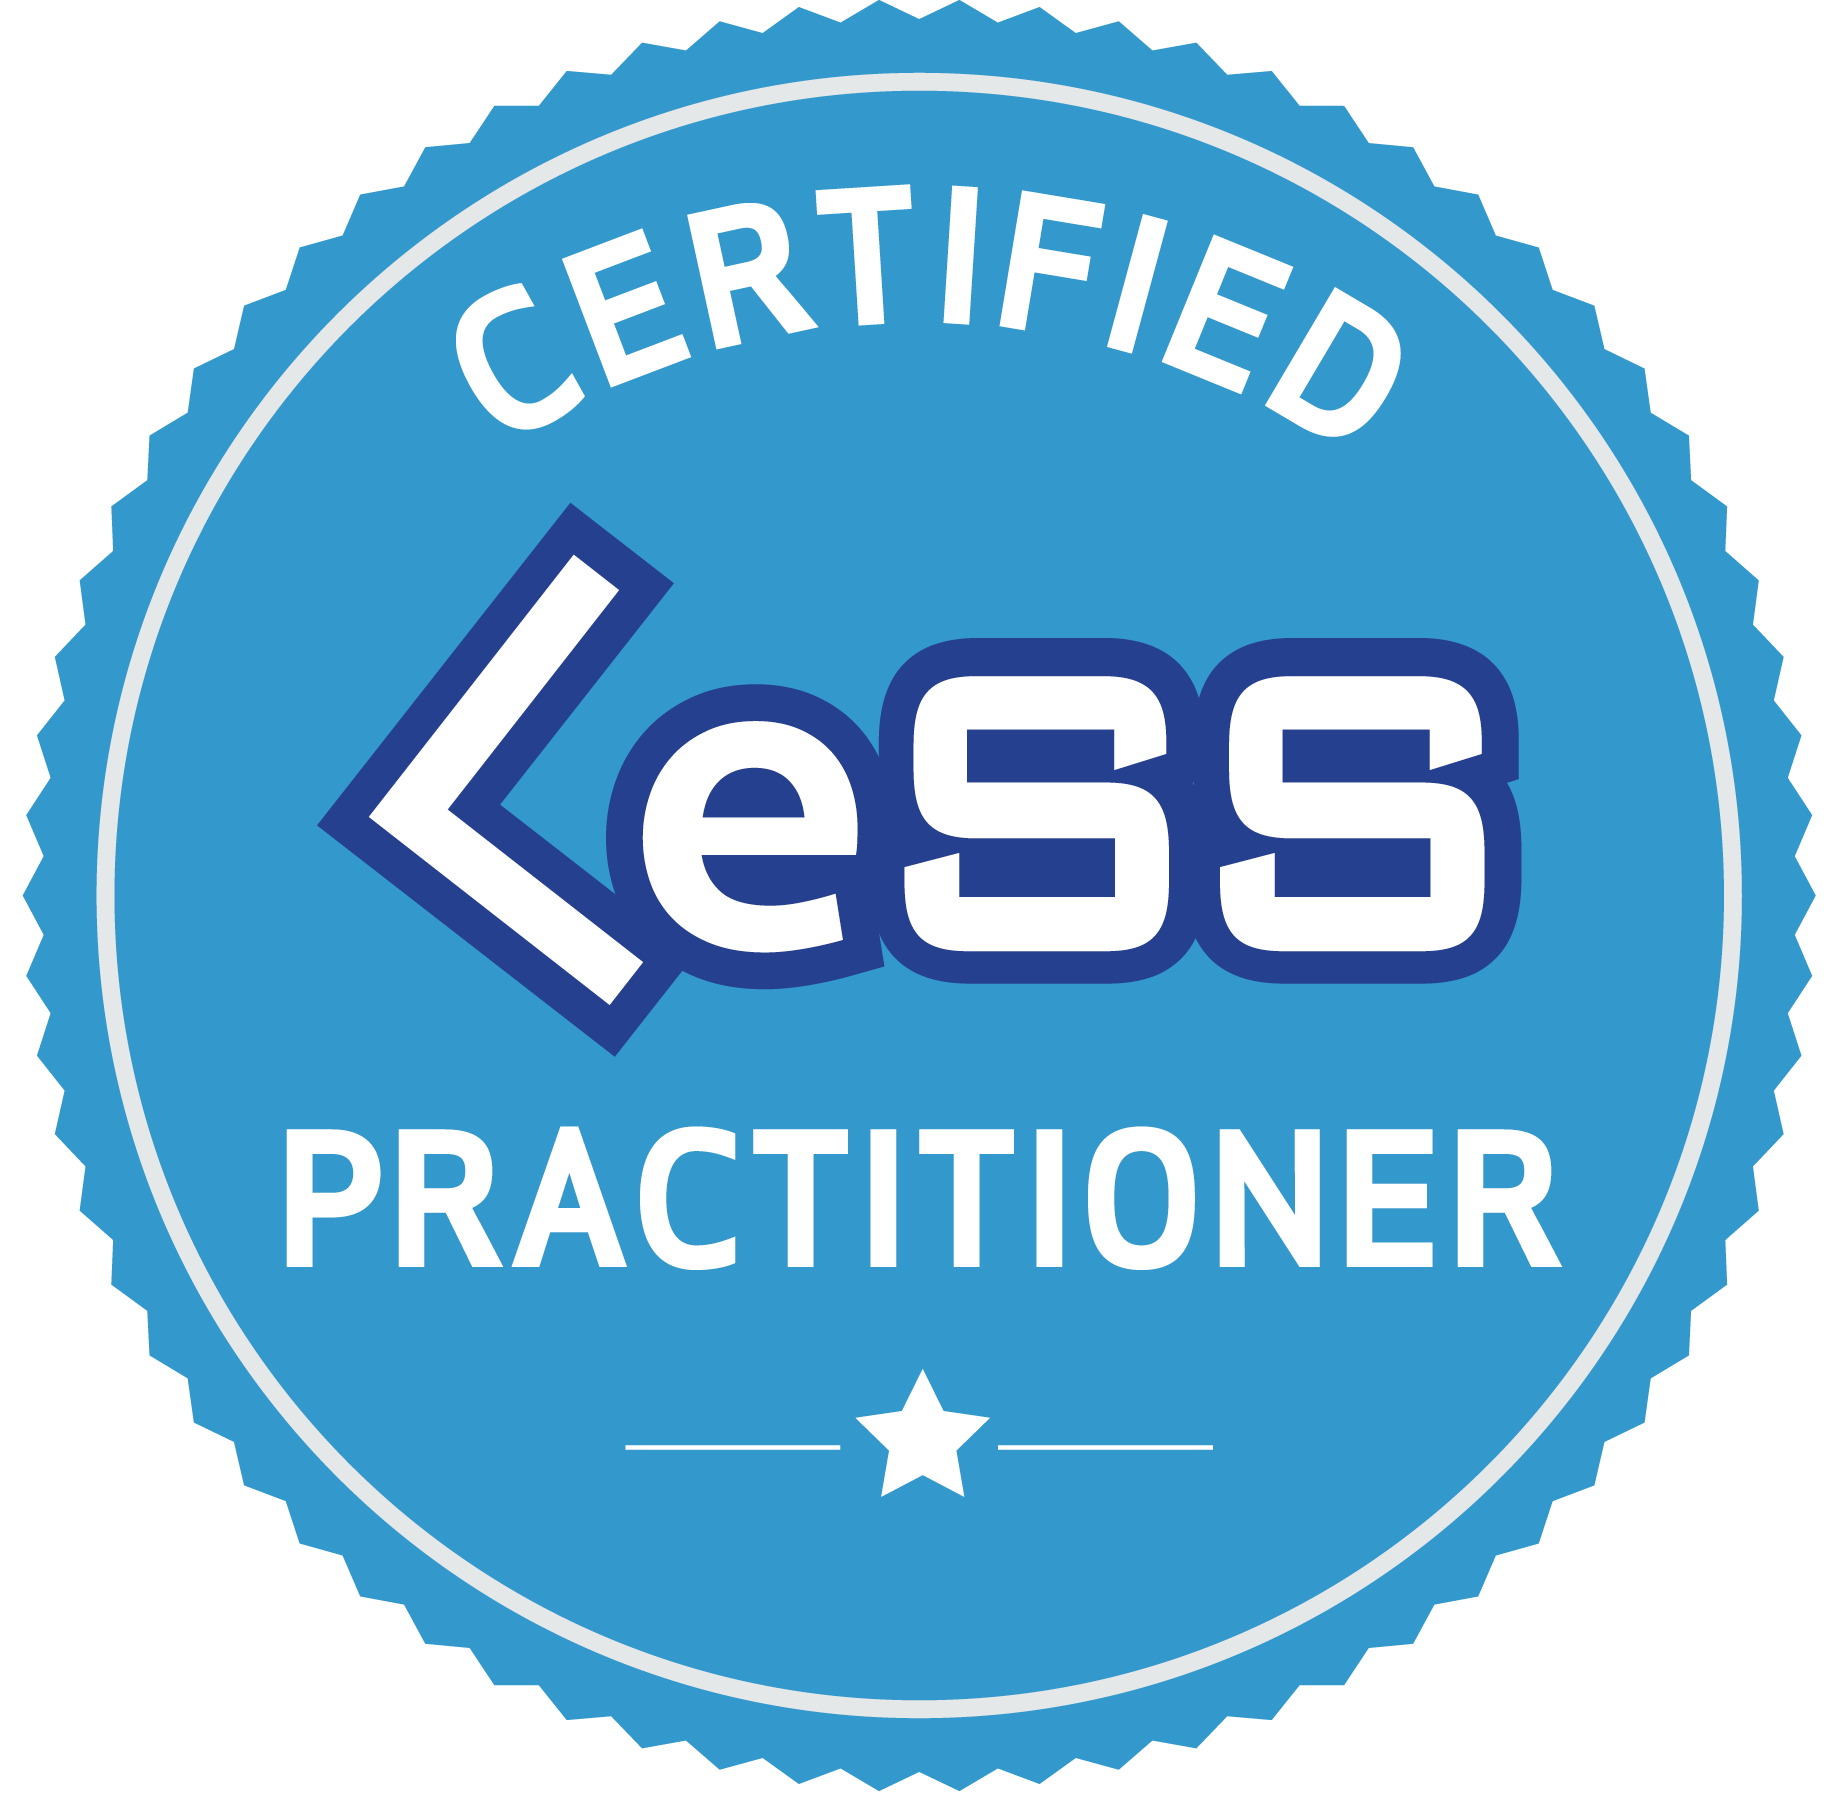 Less Certified Practioner